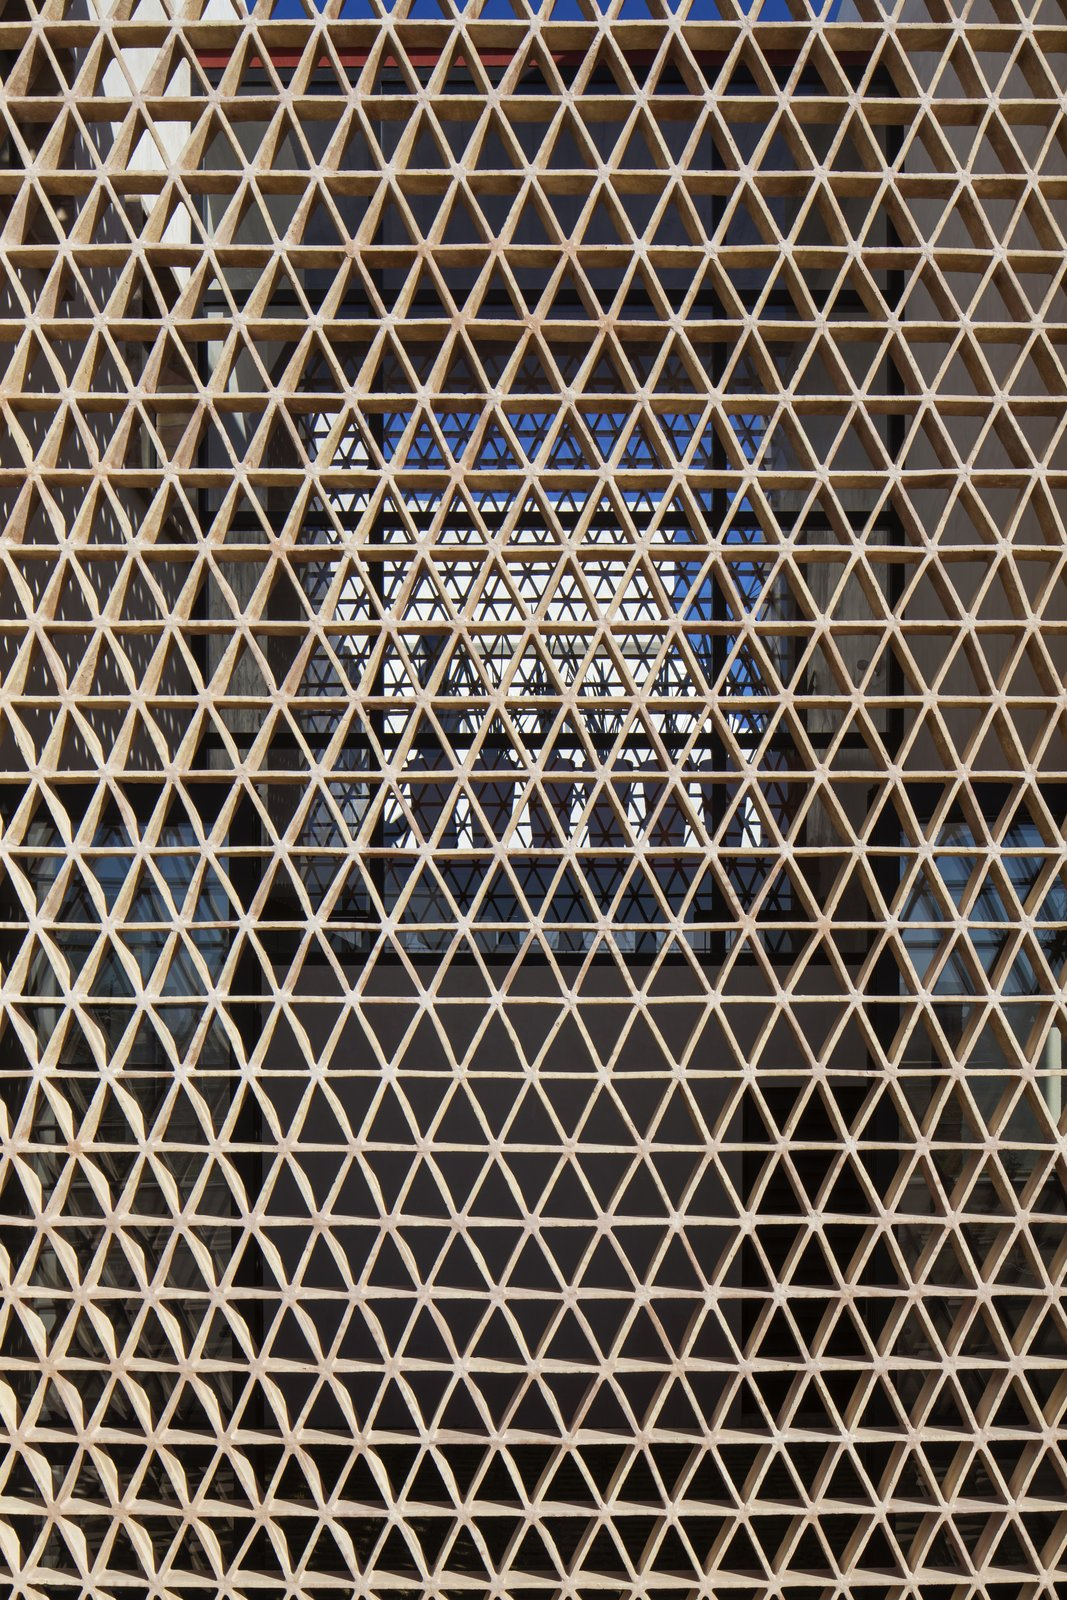 Outdoor and Vertical Fences, Wall Lattice wall made out of thin clay bricks.   Casa Iguana by OBRA BLANCA